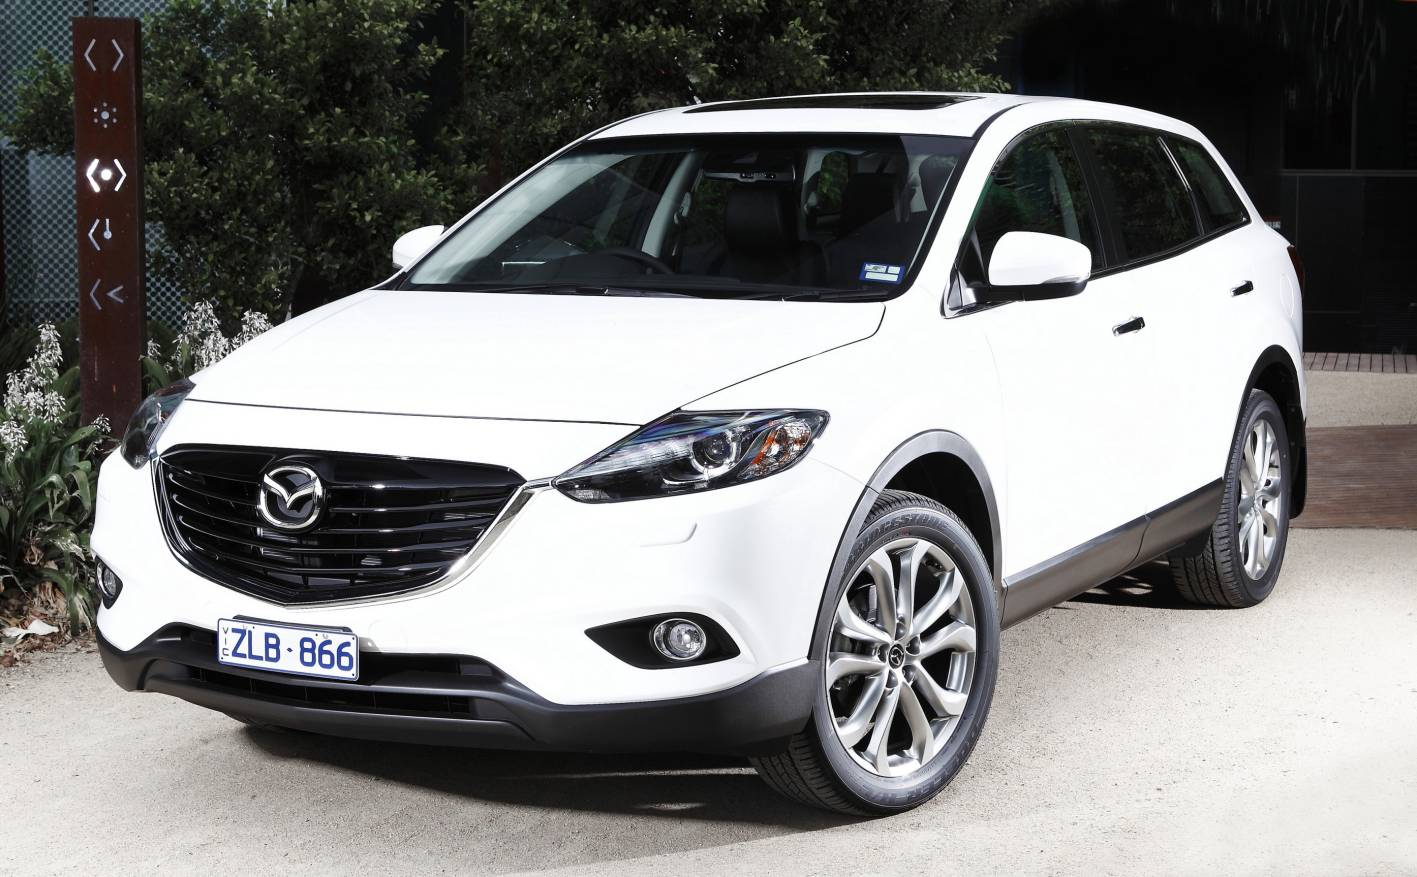 2013 Mazda Cx 9 Pricing And Specifications Photos